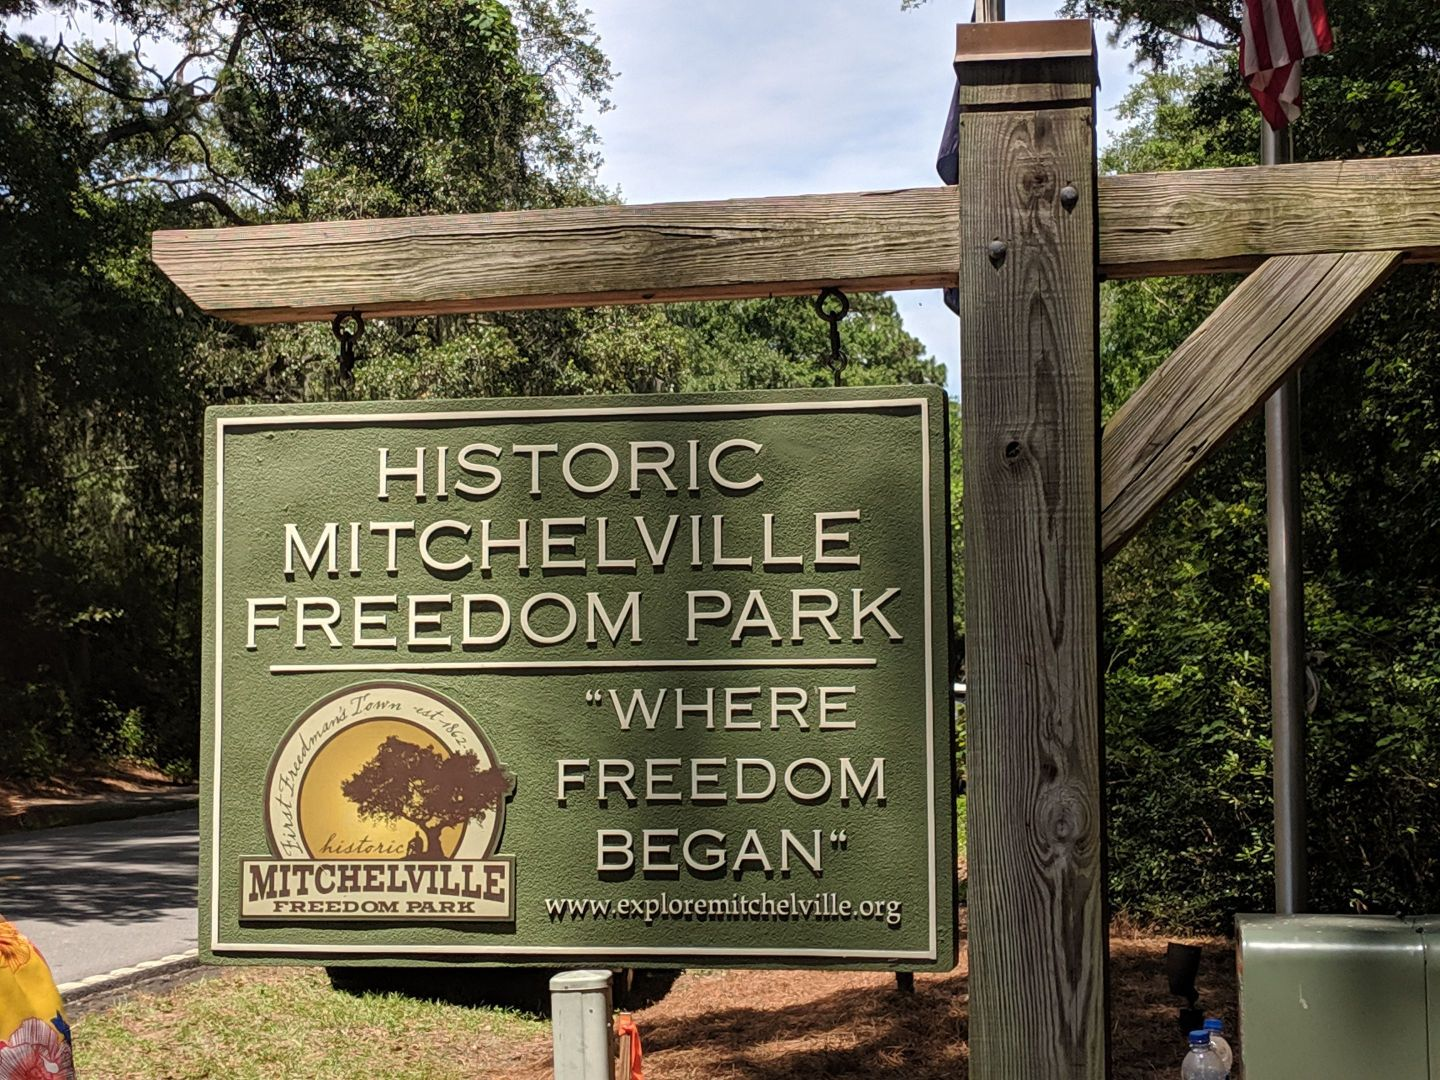 National Trust Awards $1.6 Million in Grants to 27 Sites to Help Preserve African American History